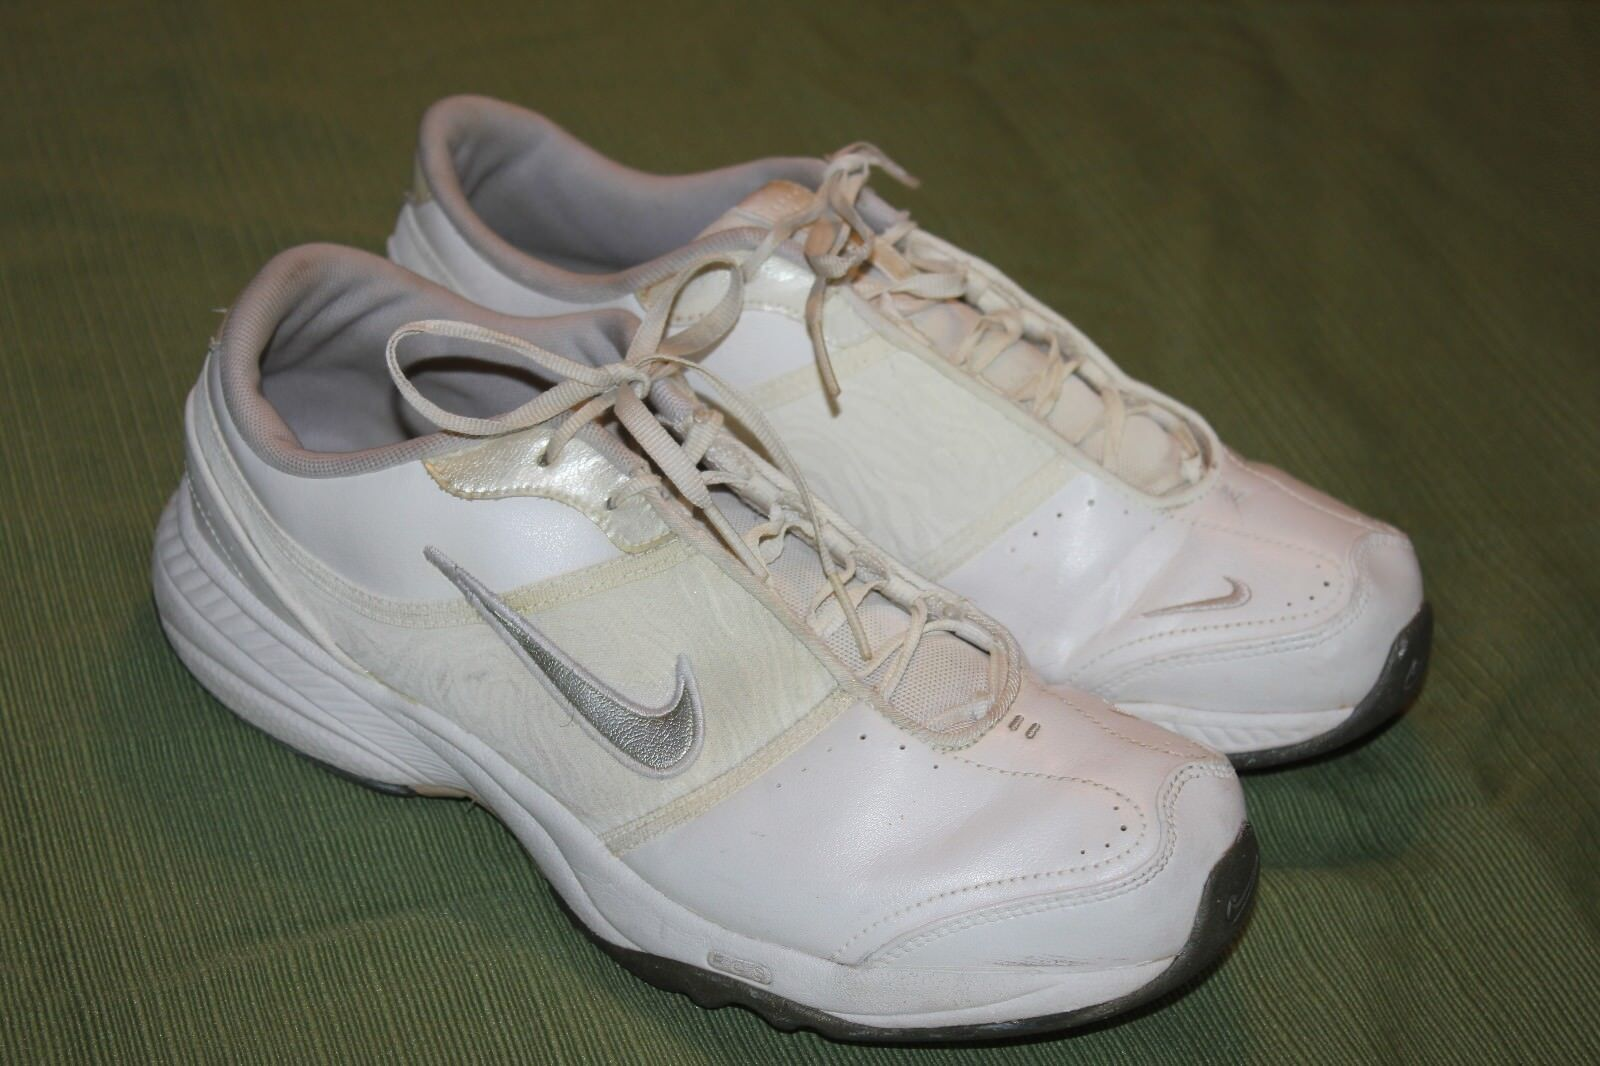 NIKE FCO WHITE LEATHER WOMEN'S ATHLETIC SHOES SZ 9 1/2M